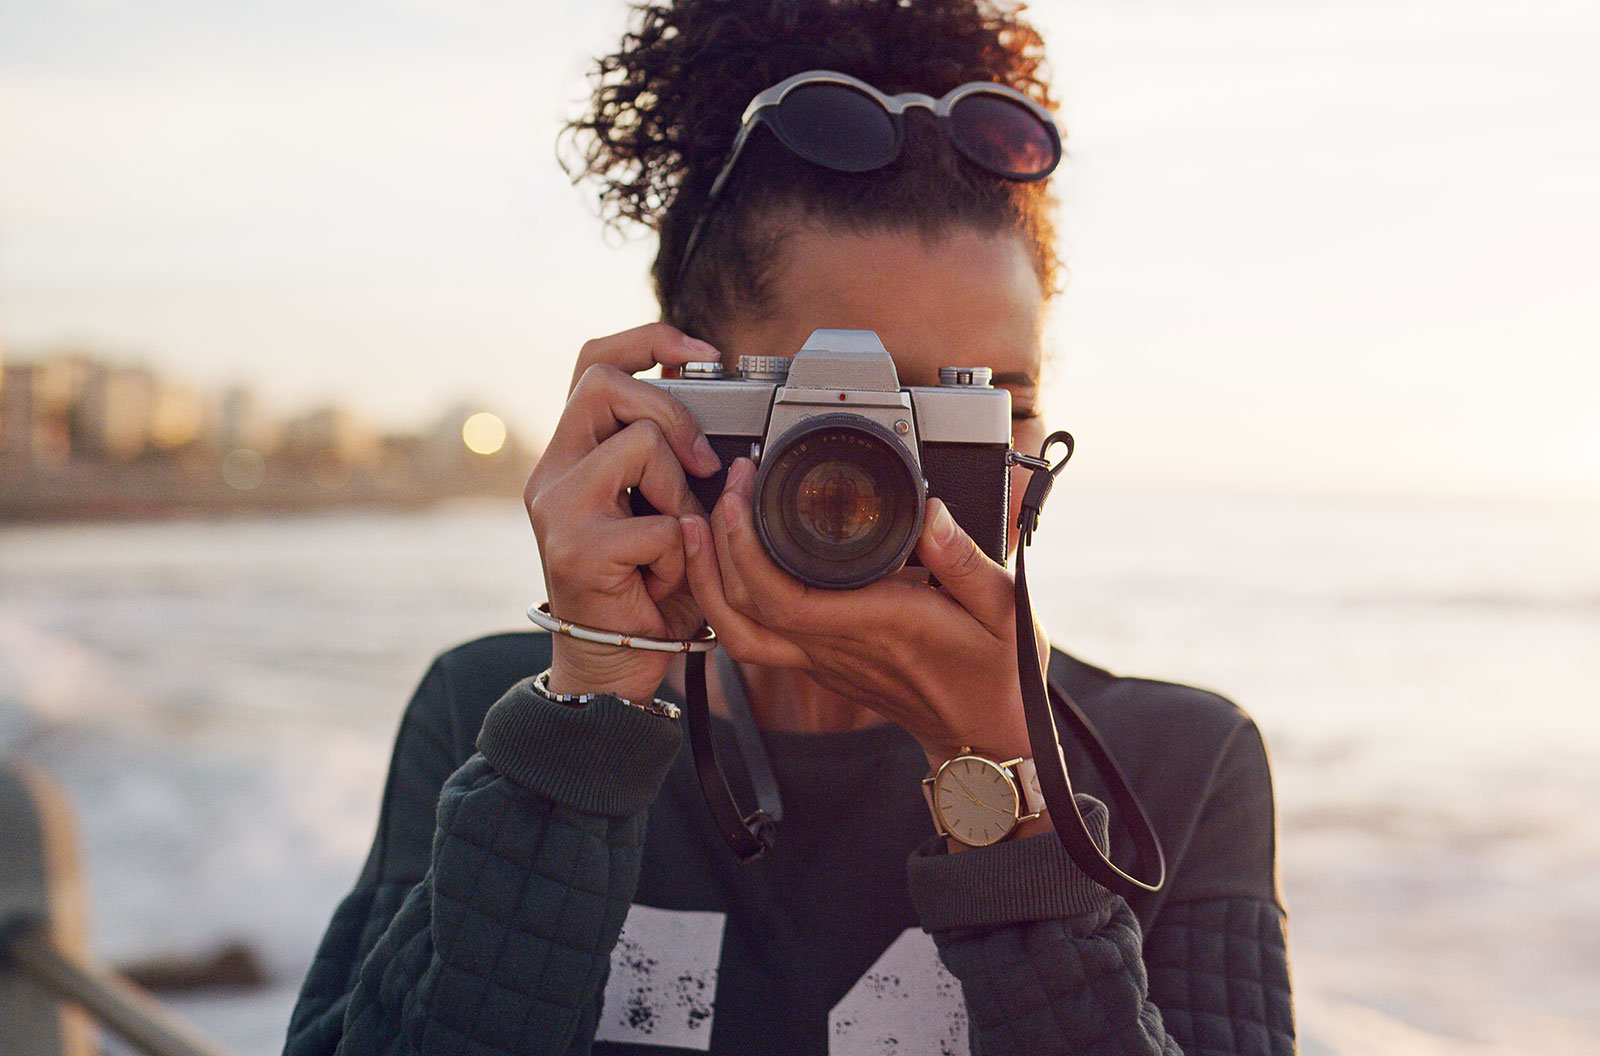 Young woman standing alone in the city and taking a picture with her camera